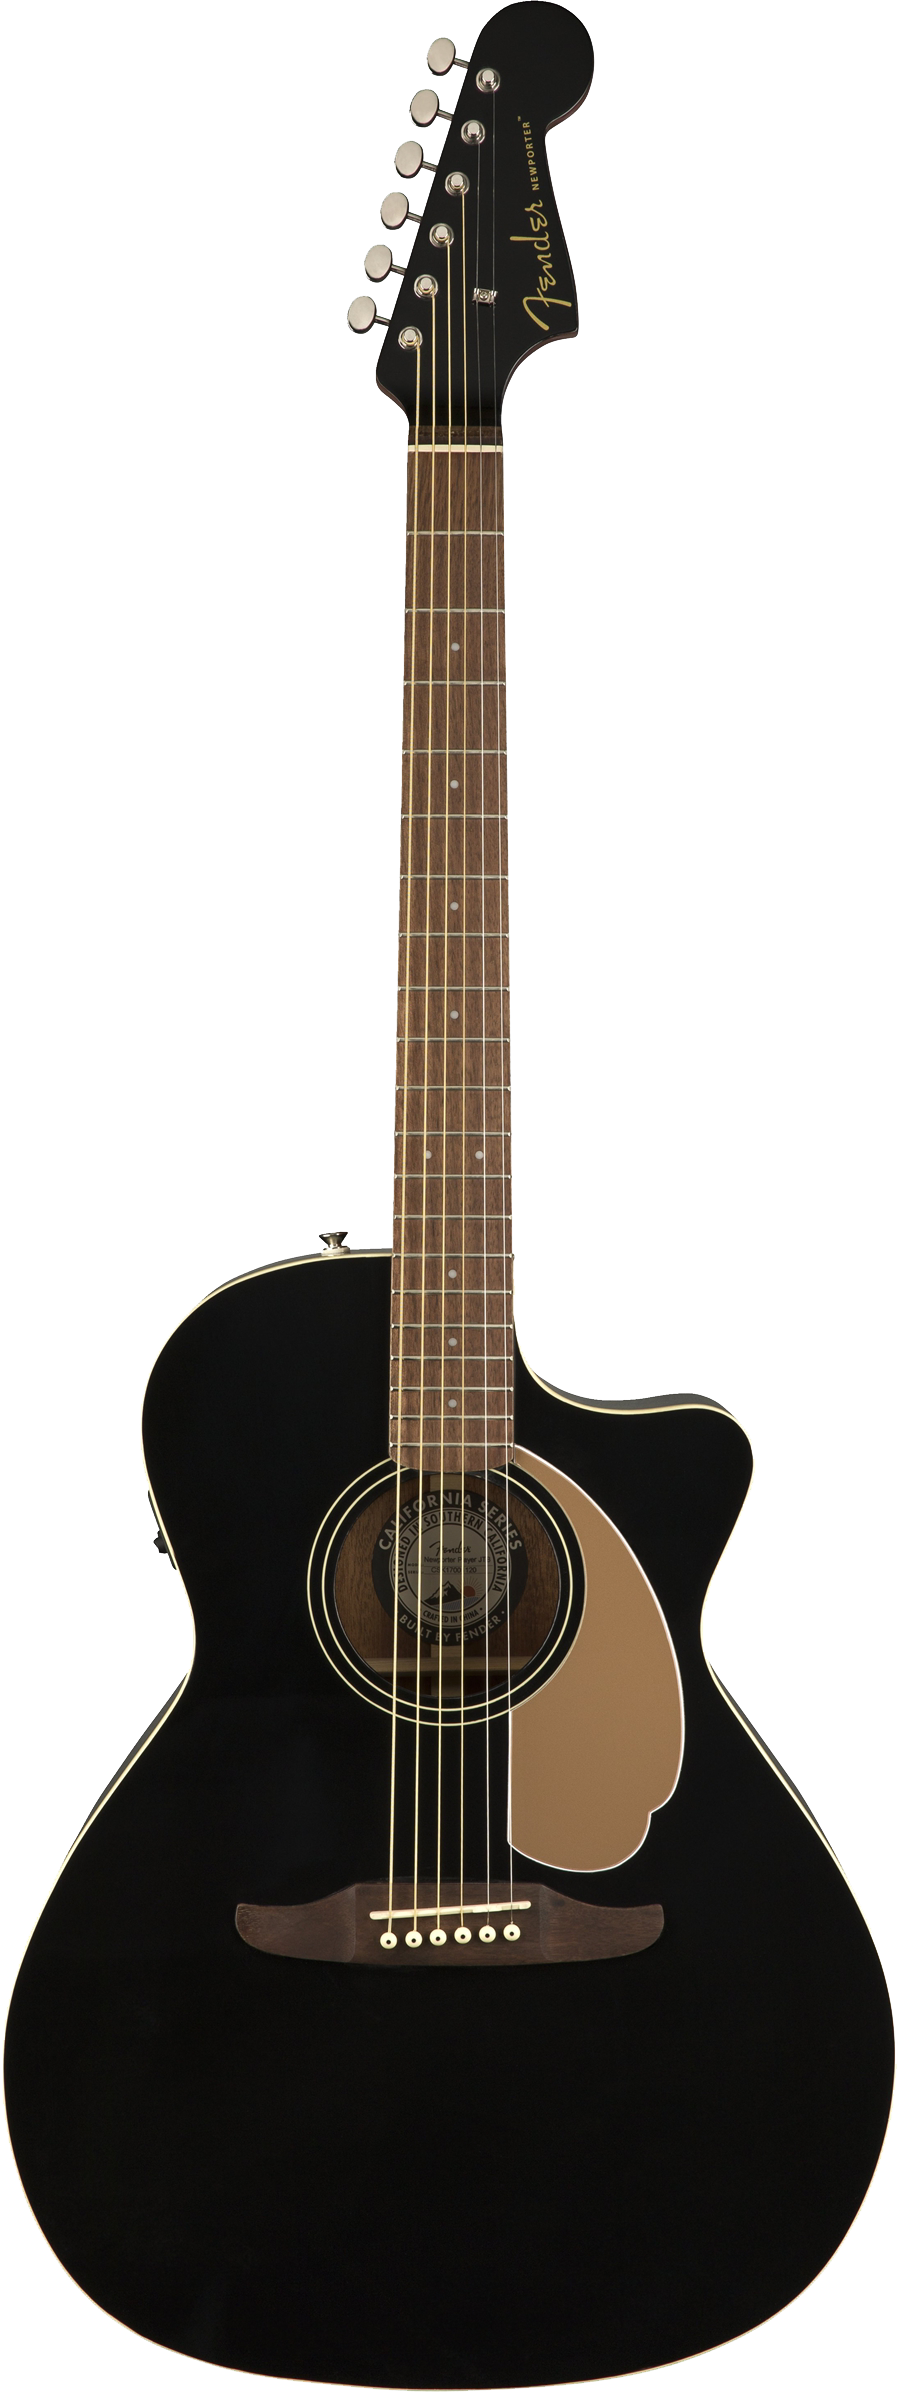 Fender Newporter Player Acoustic / Electric Guitar - Jetty Black